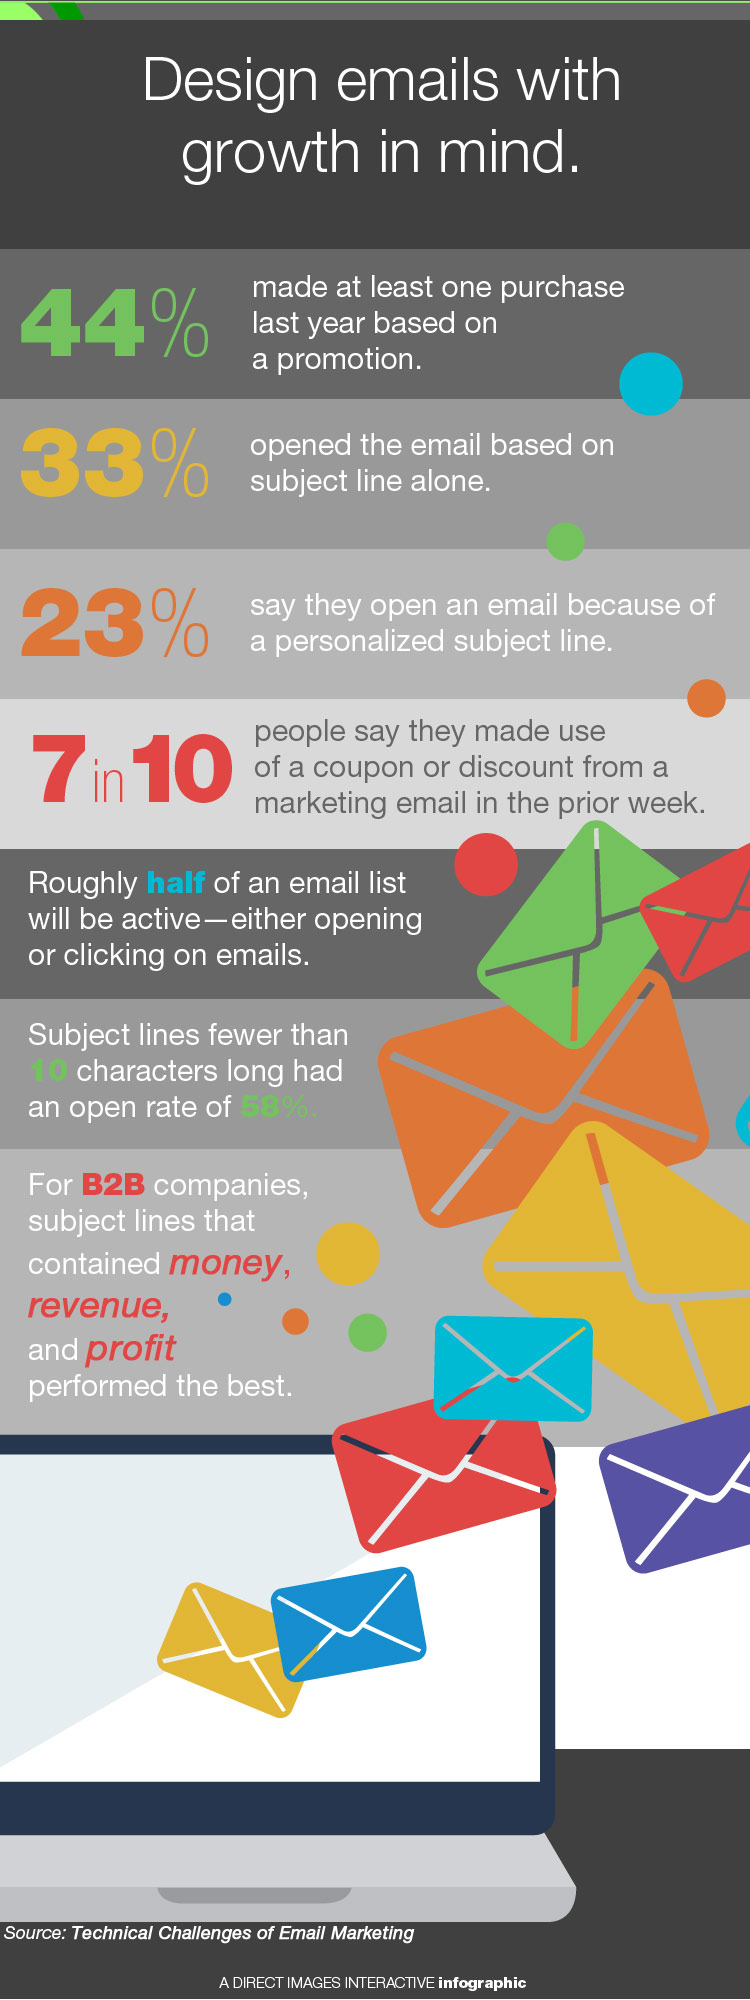 email-marketing_infographic_02.jpg